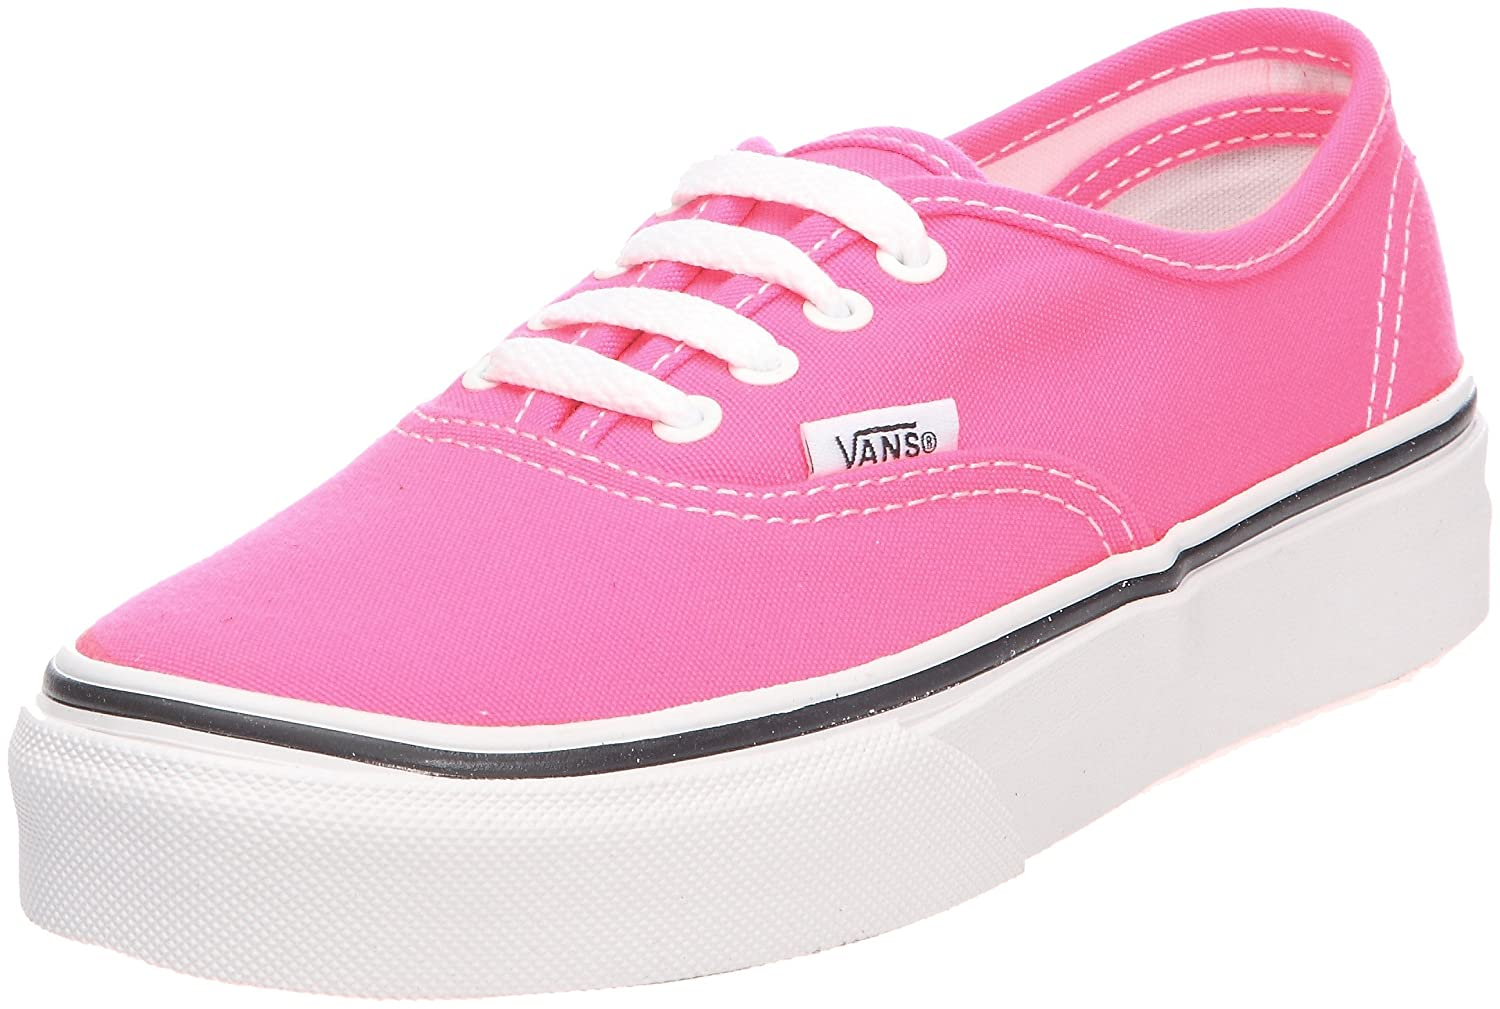 1760bee483 Buy vans shoes pink and white